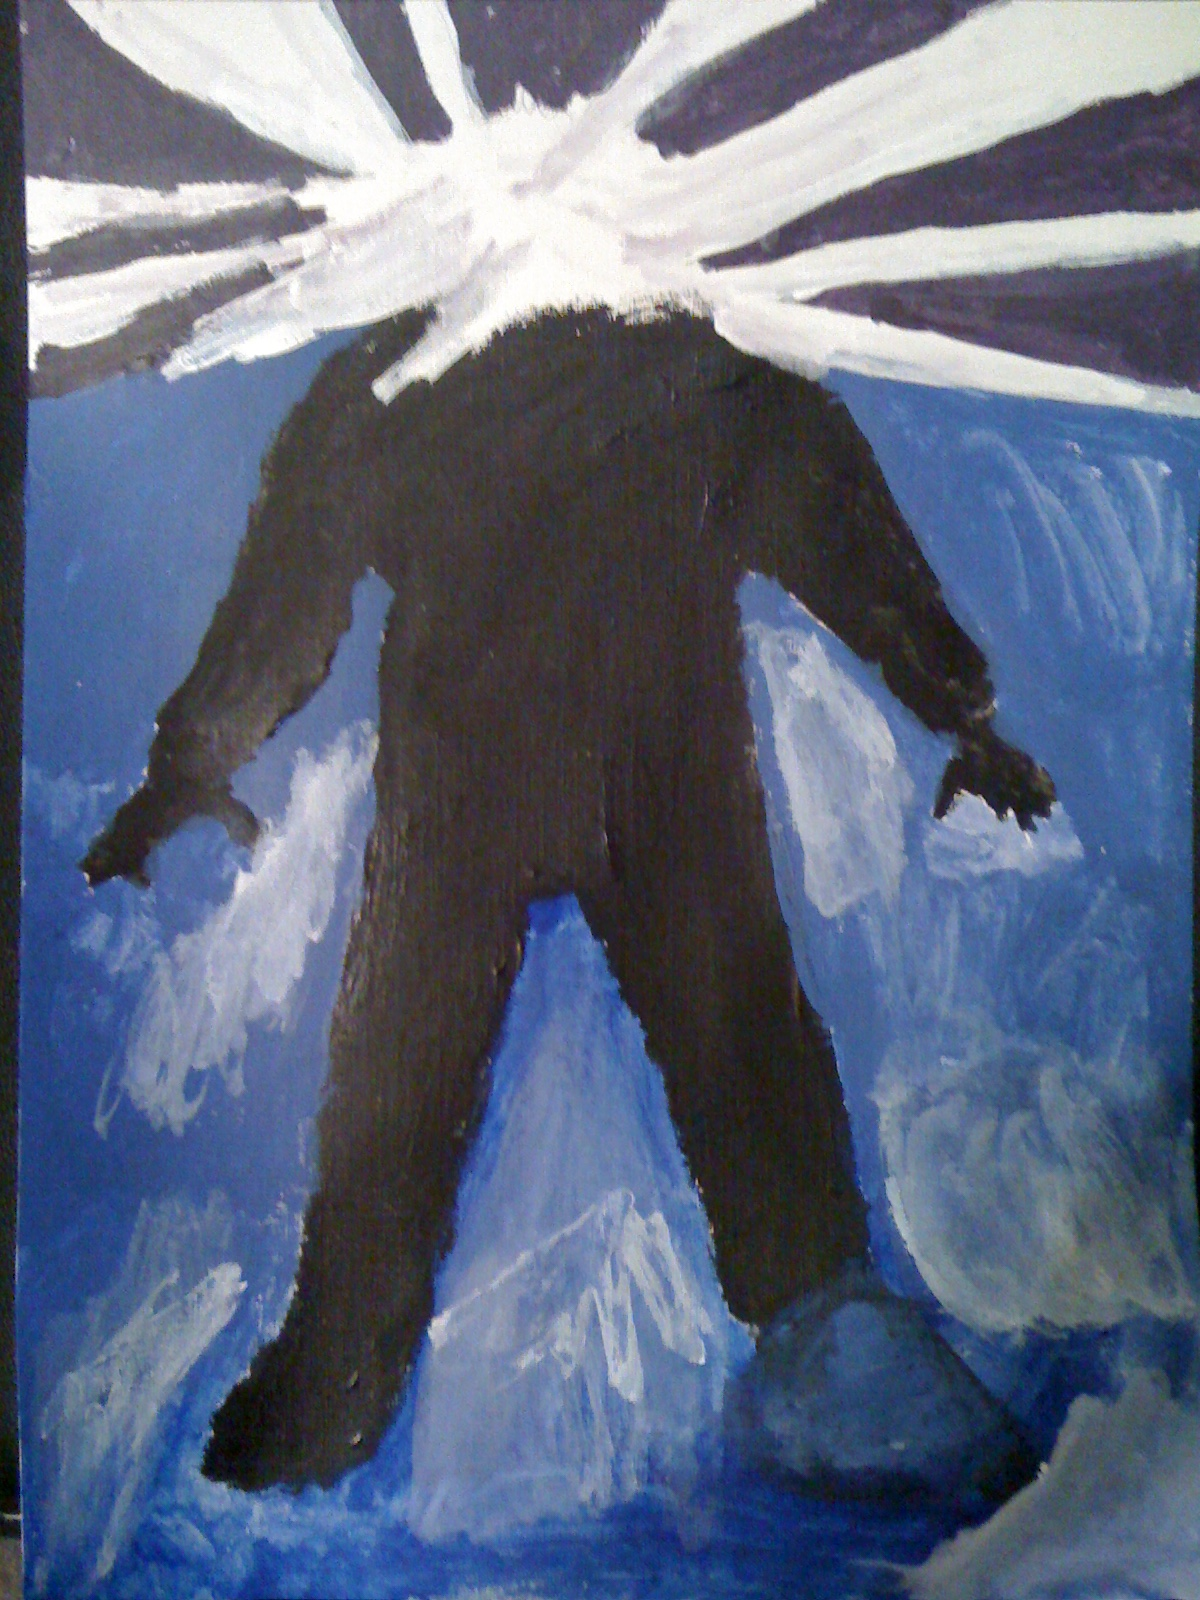 My The Thing Poster